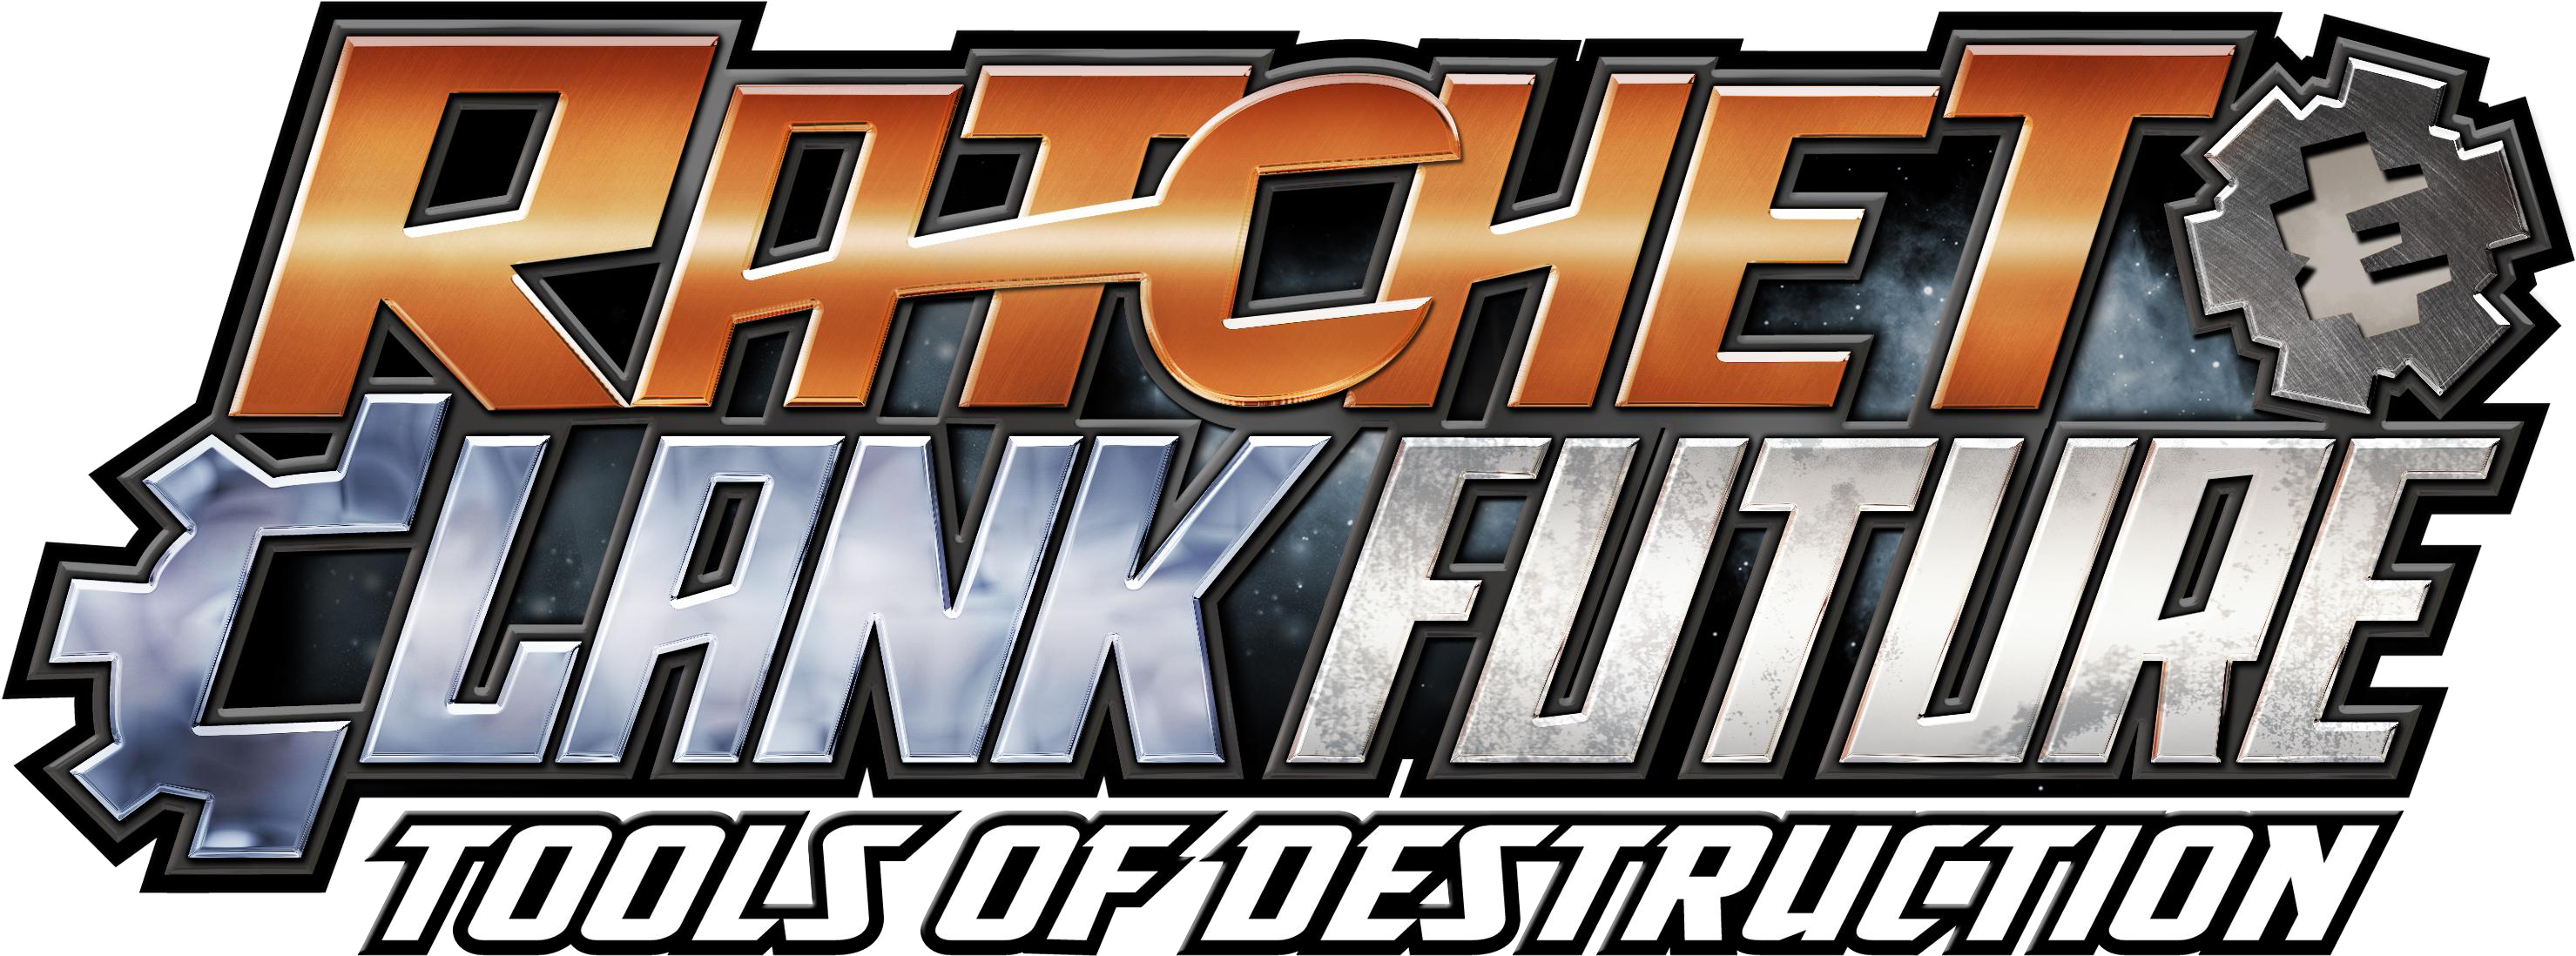 Logo For Ratchet Clank Future Tools Of Destruction By Realsayakamaizono Steamgriddb